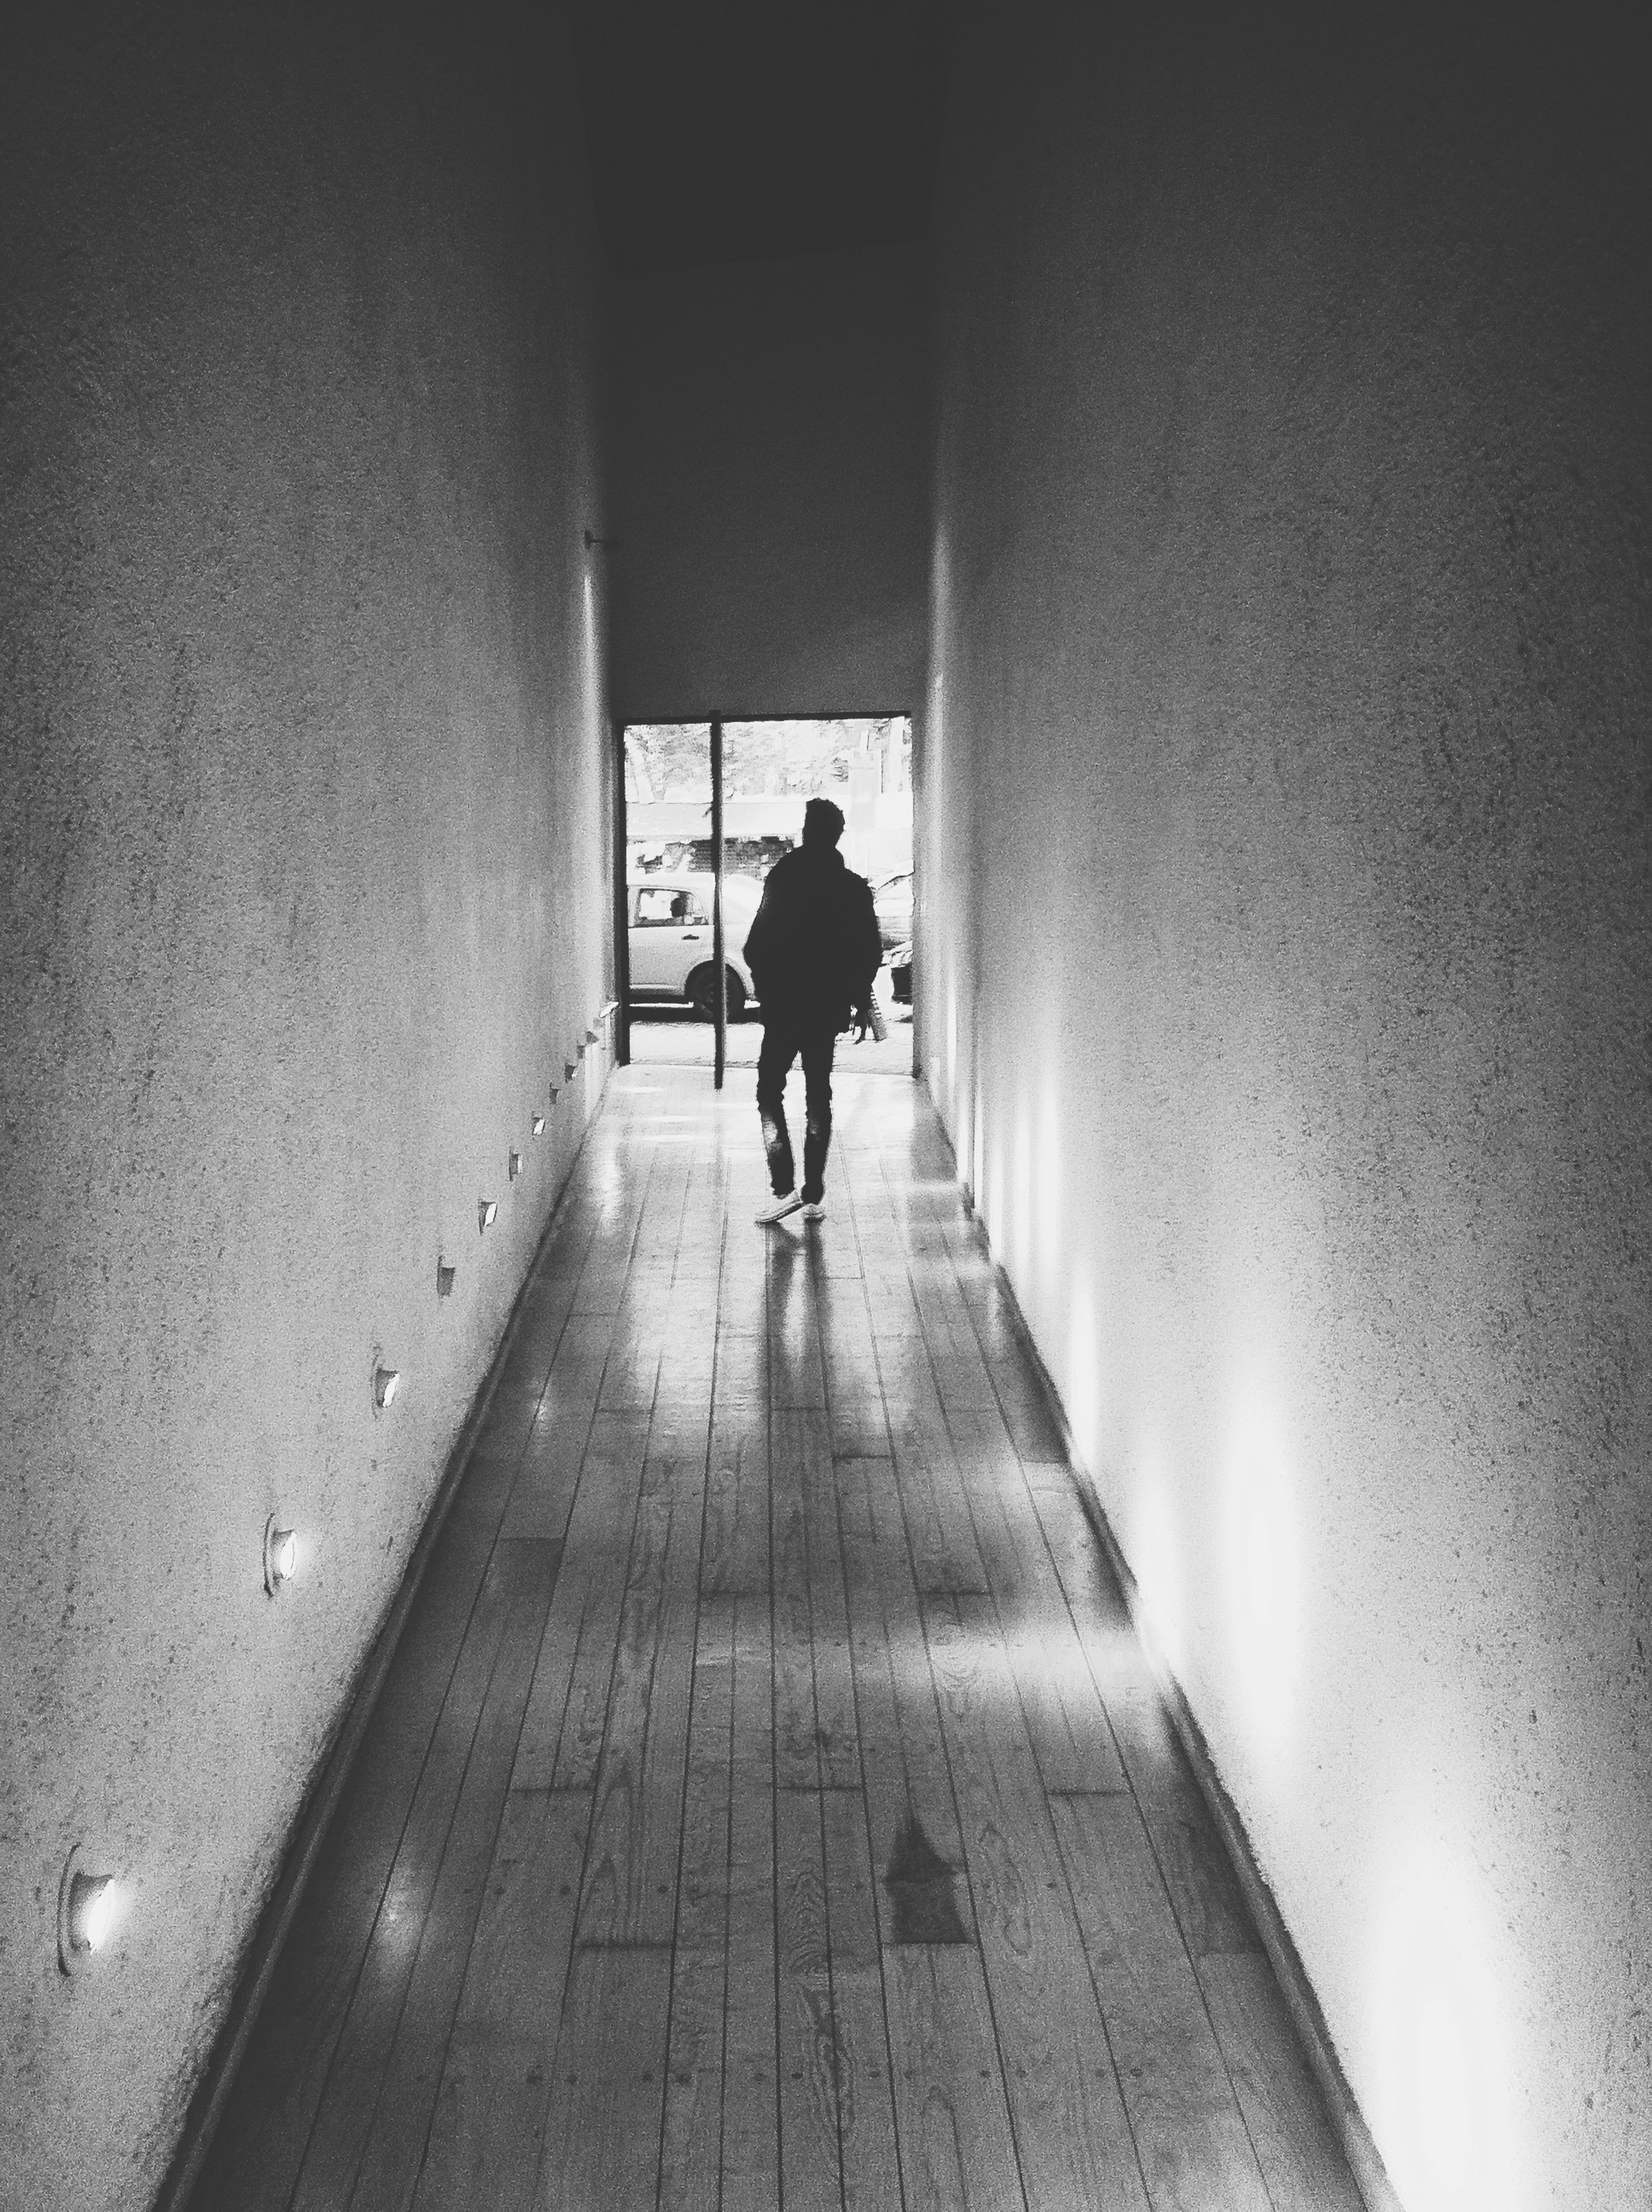 architecture, indoors, built structure, full length, wall - building feature, men, walking, the way forward, lifestyles, rear view, wall, building, leisure activity, building exterior, silhouette, day, unrecognizable person, illuminated